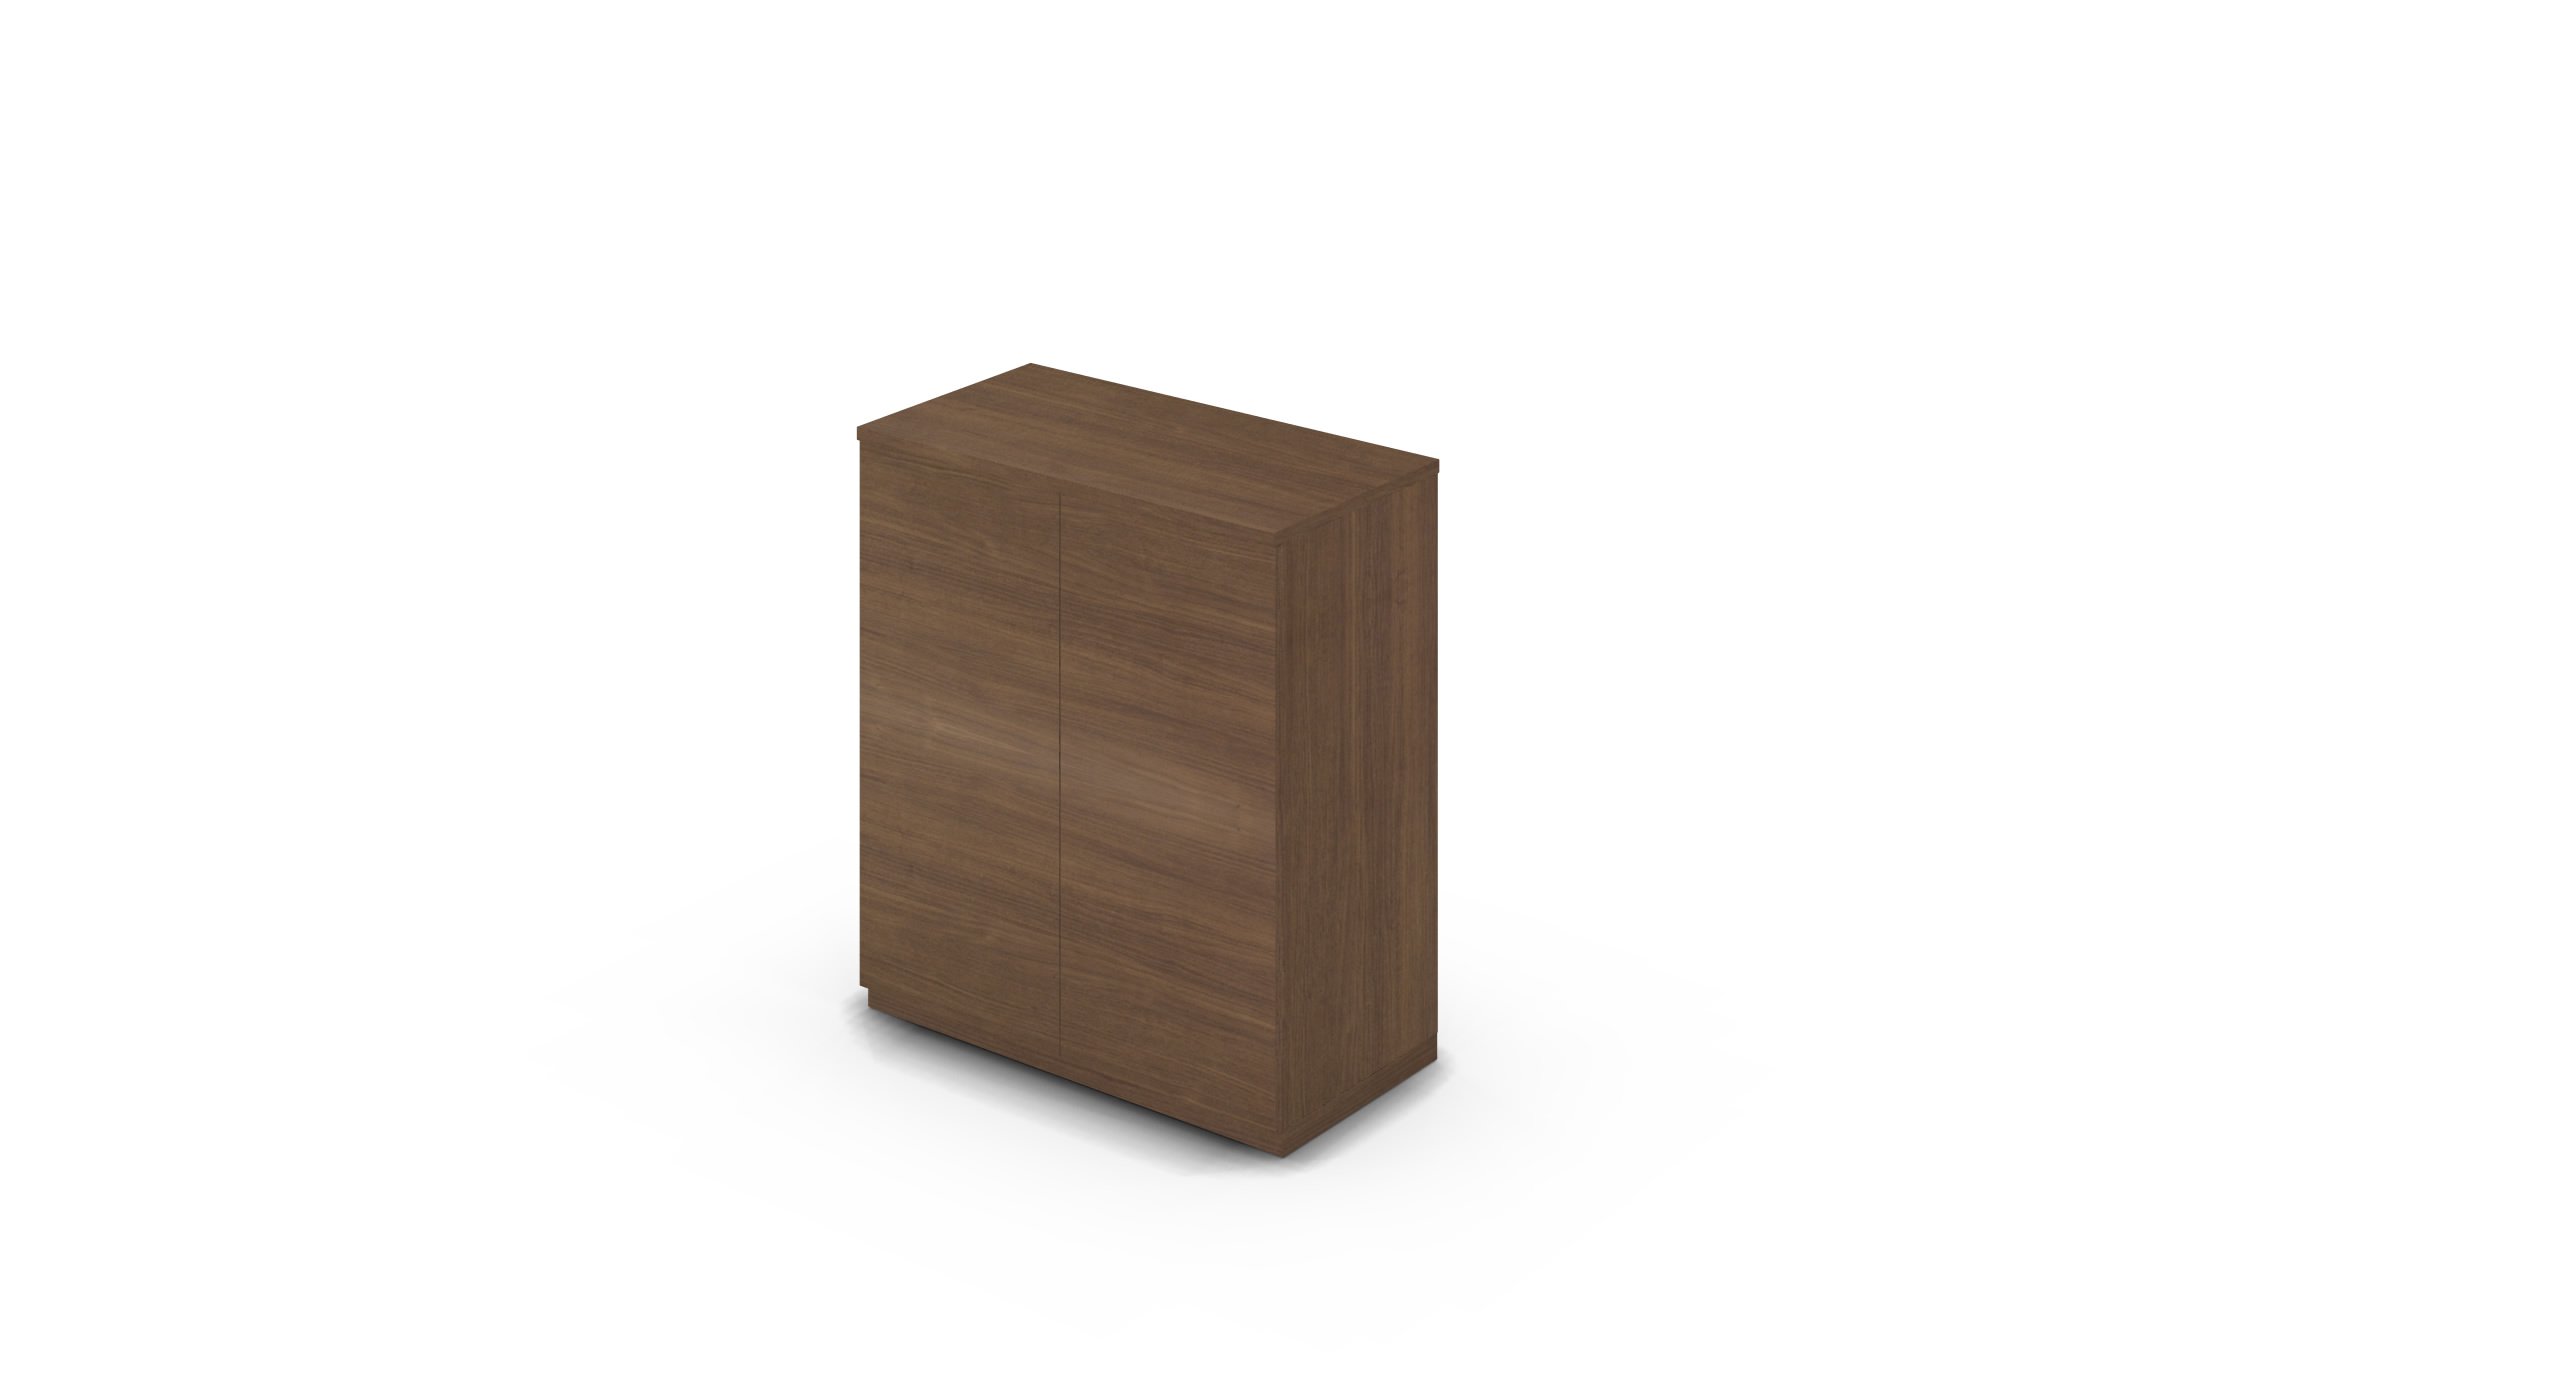 Cabinet_900x450x1125_HD_Walnut_Push_NoCylinder